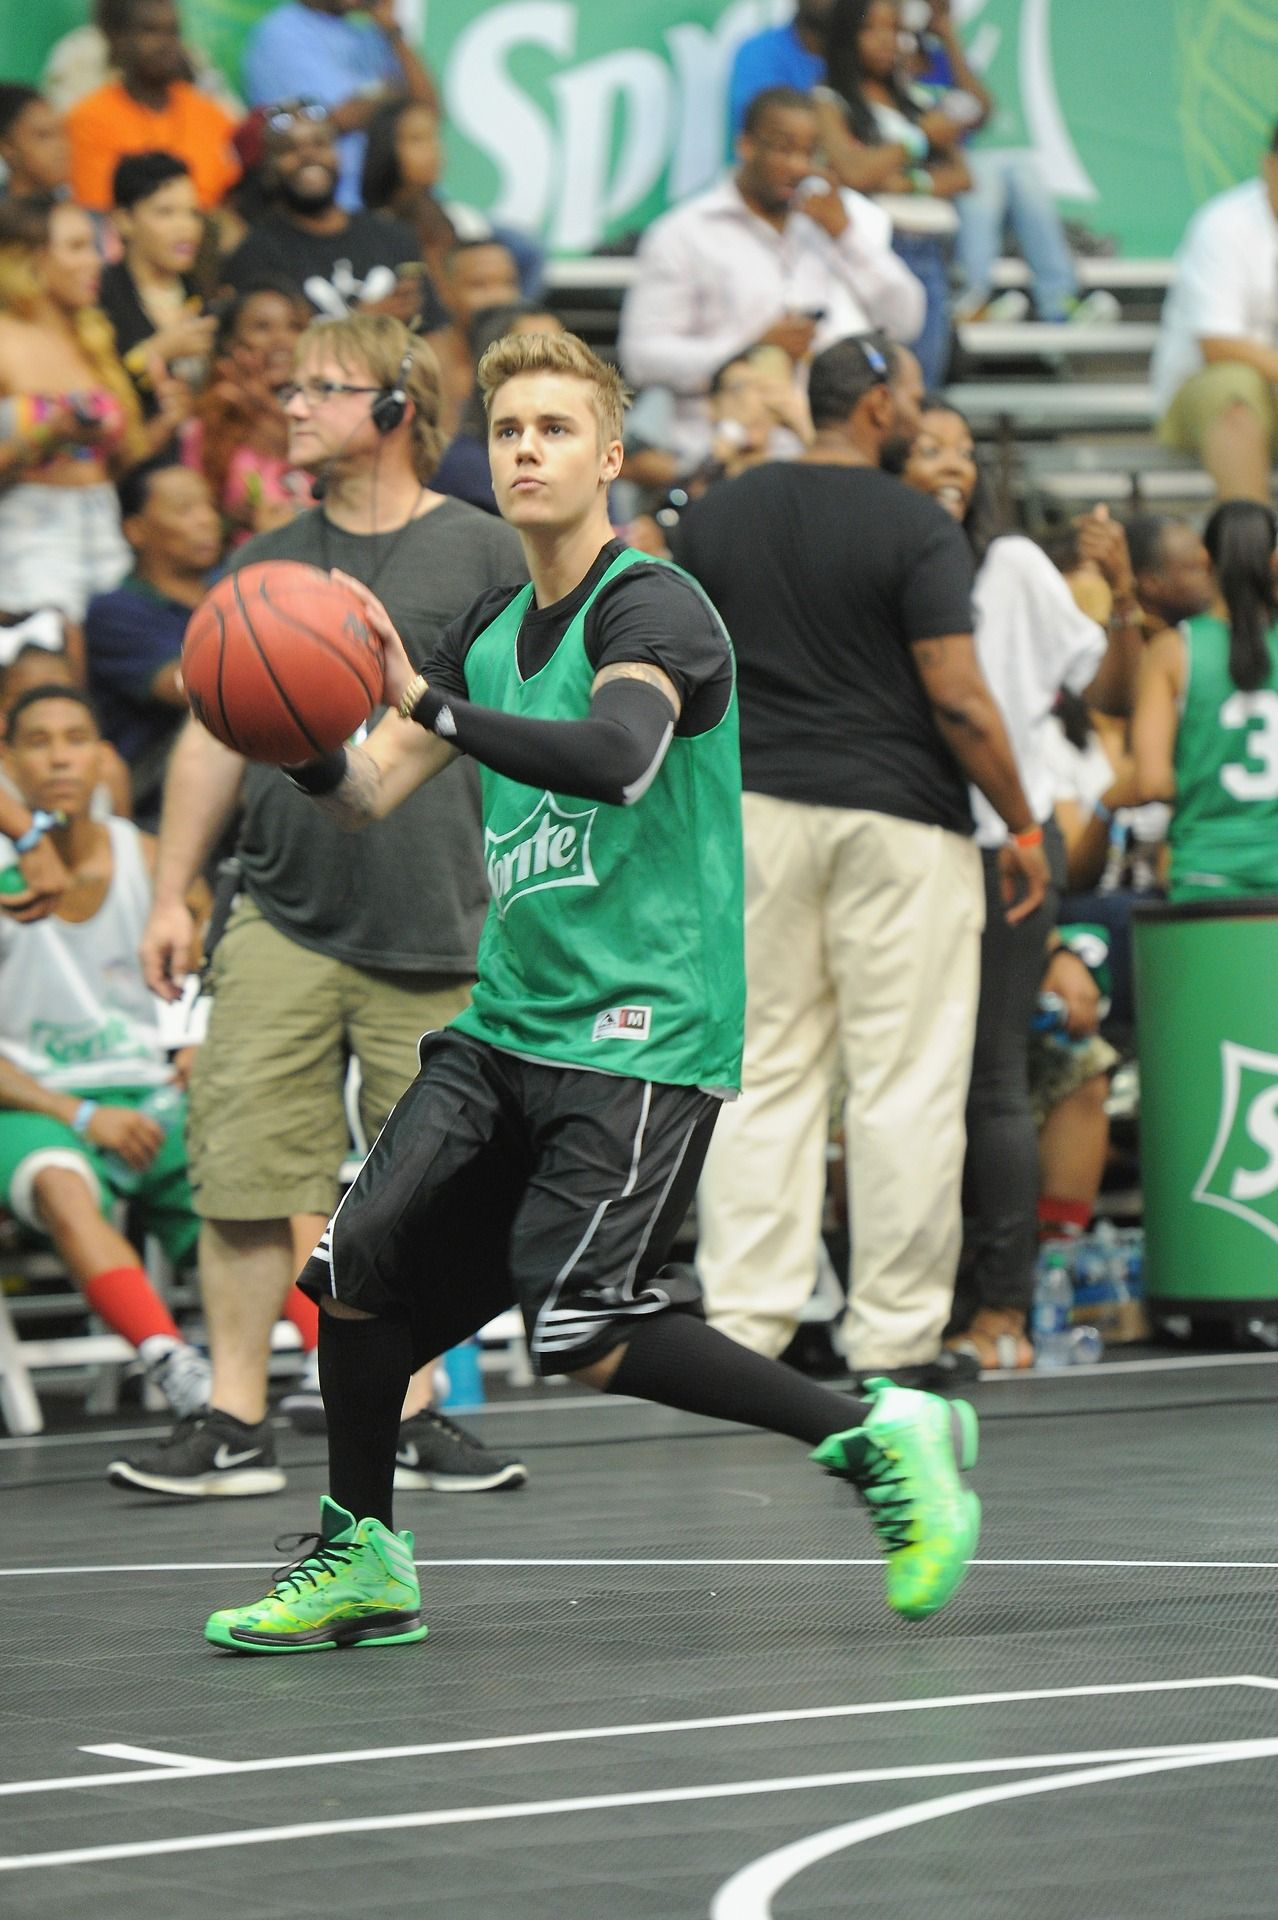 Bieber All At Star The Pinterest Justin Jb Baby My Love Game qAzZUx6wE